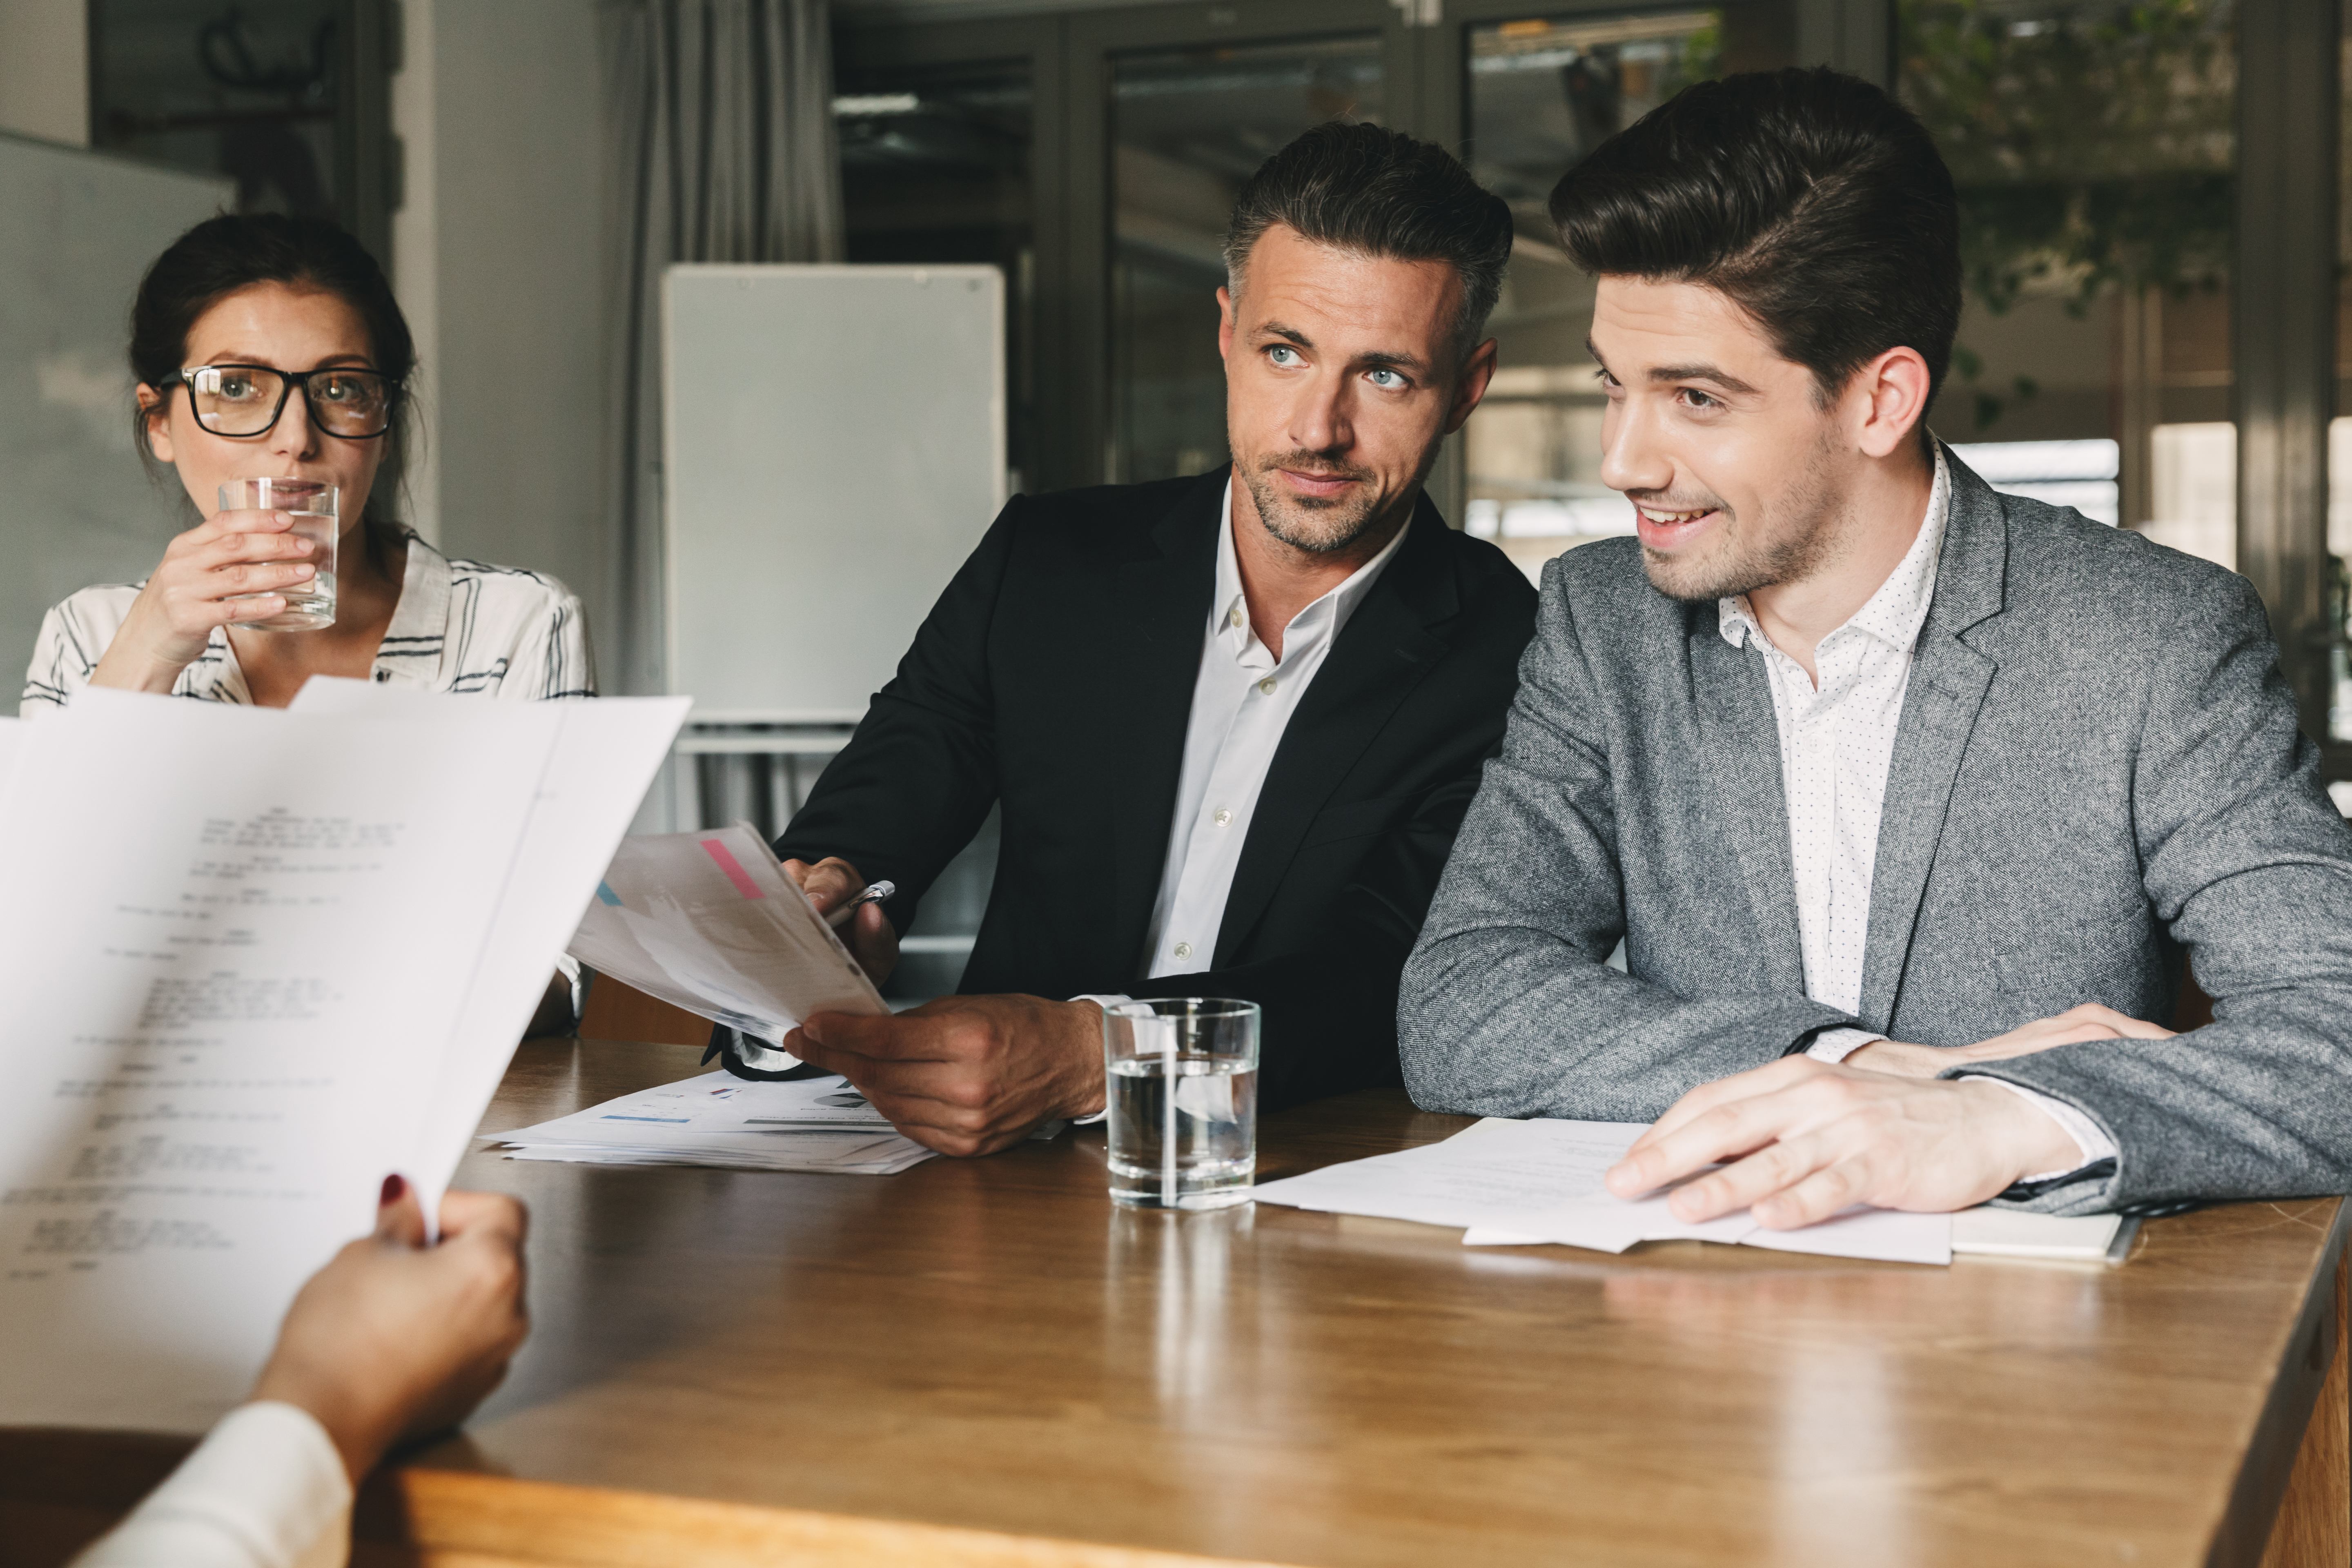 How to Get Noticed By Corporate Recruiters